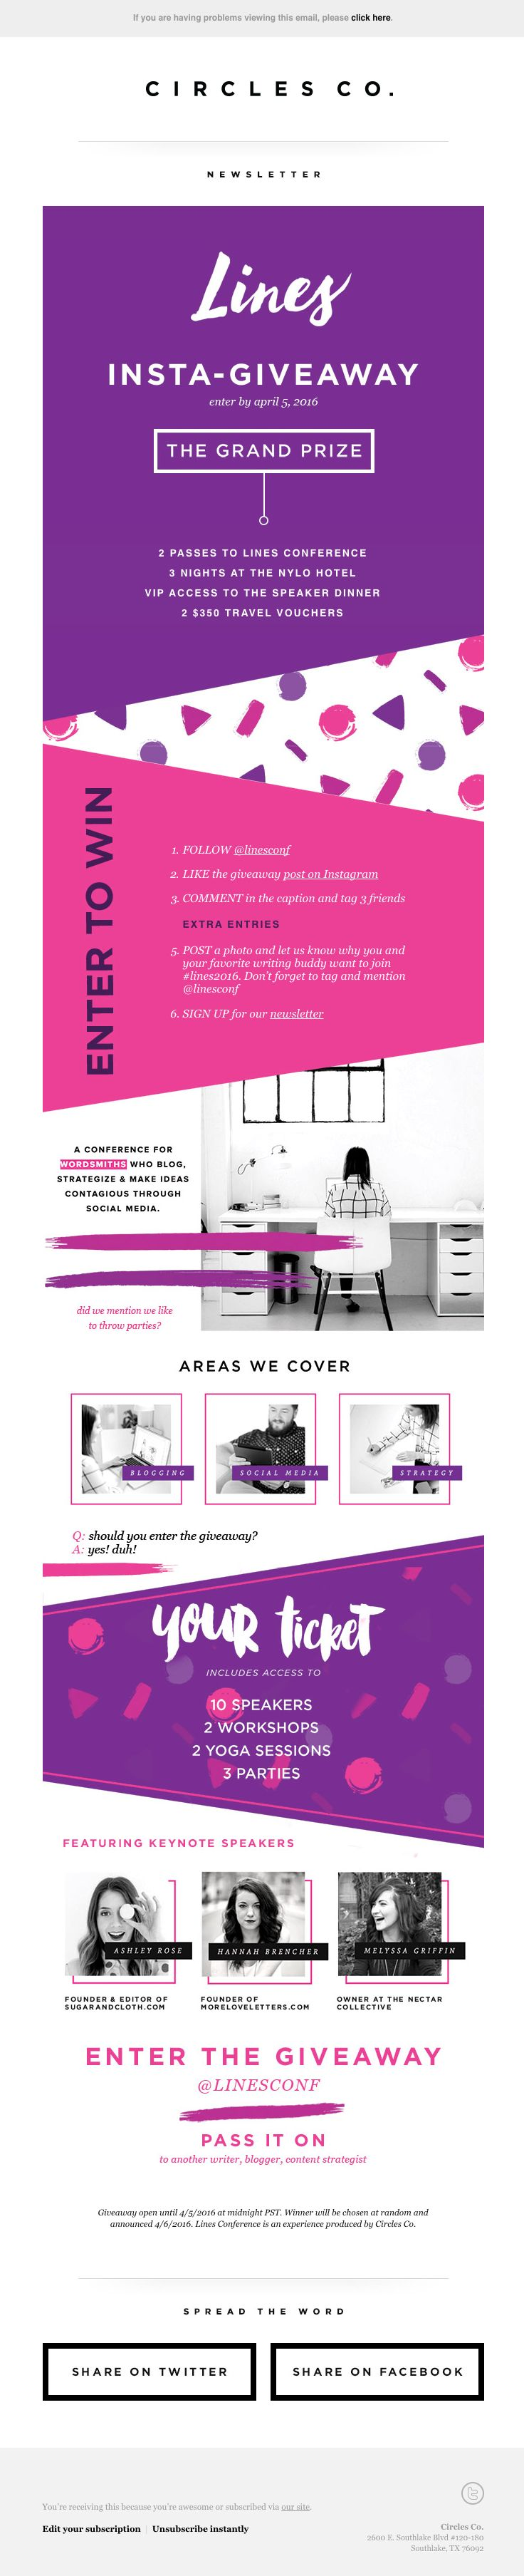 Newsletter Design by Lindsey Eryn Clark of Third Story Apartment for Lines Conference and Circles Co.